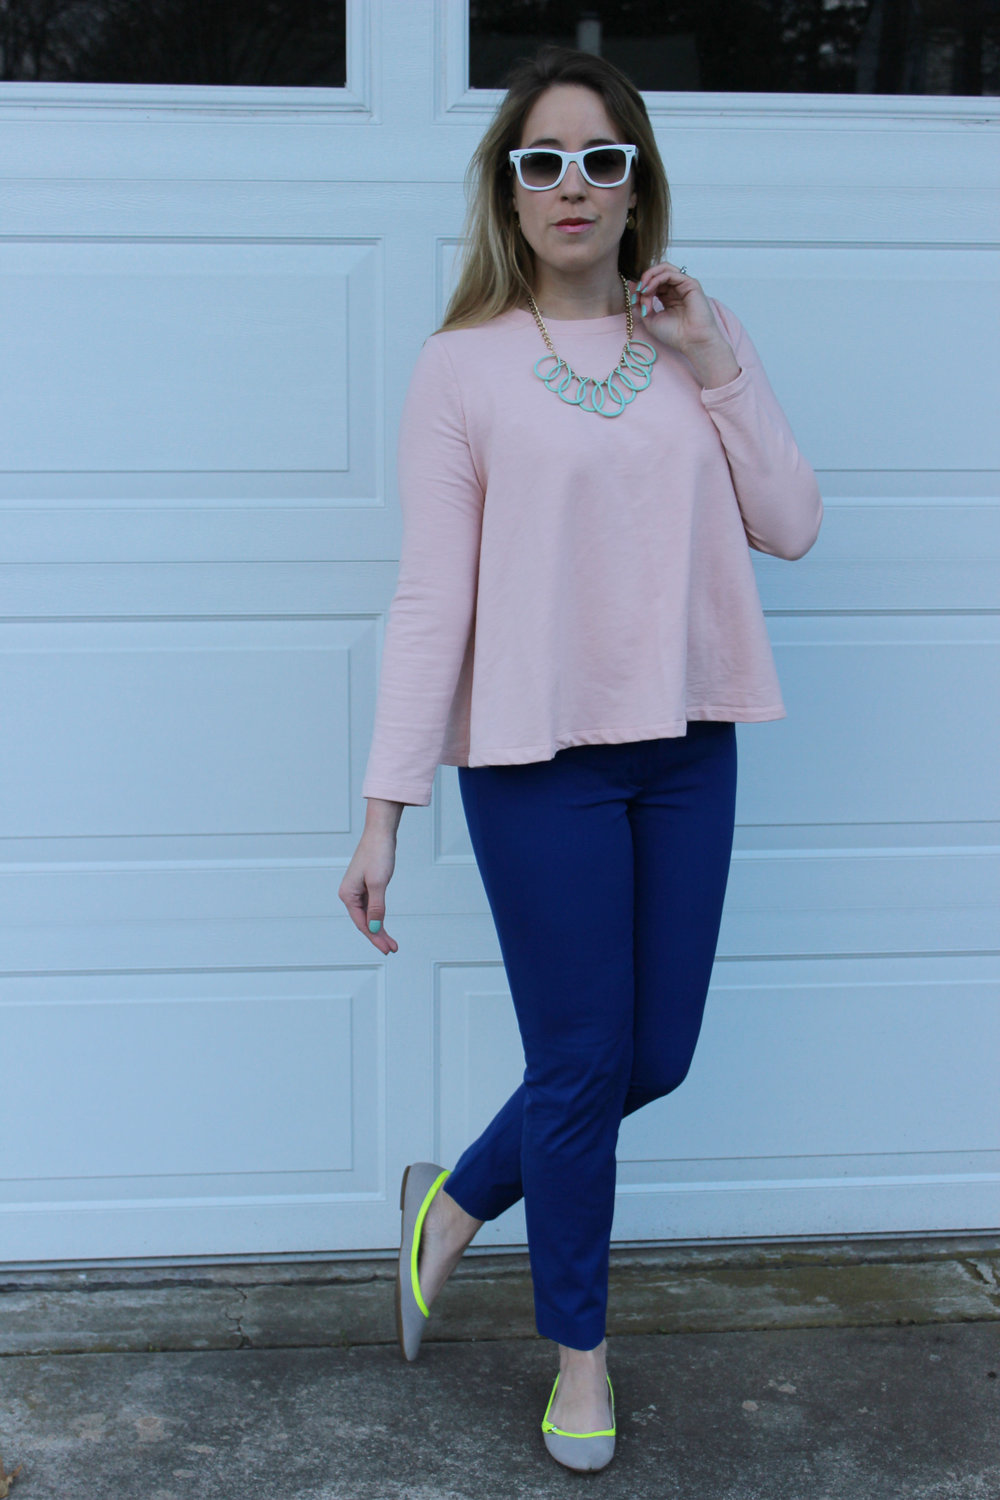 Mixing Bright Colors and Pastels for Spring